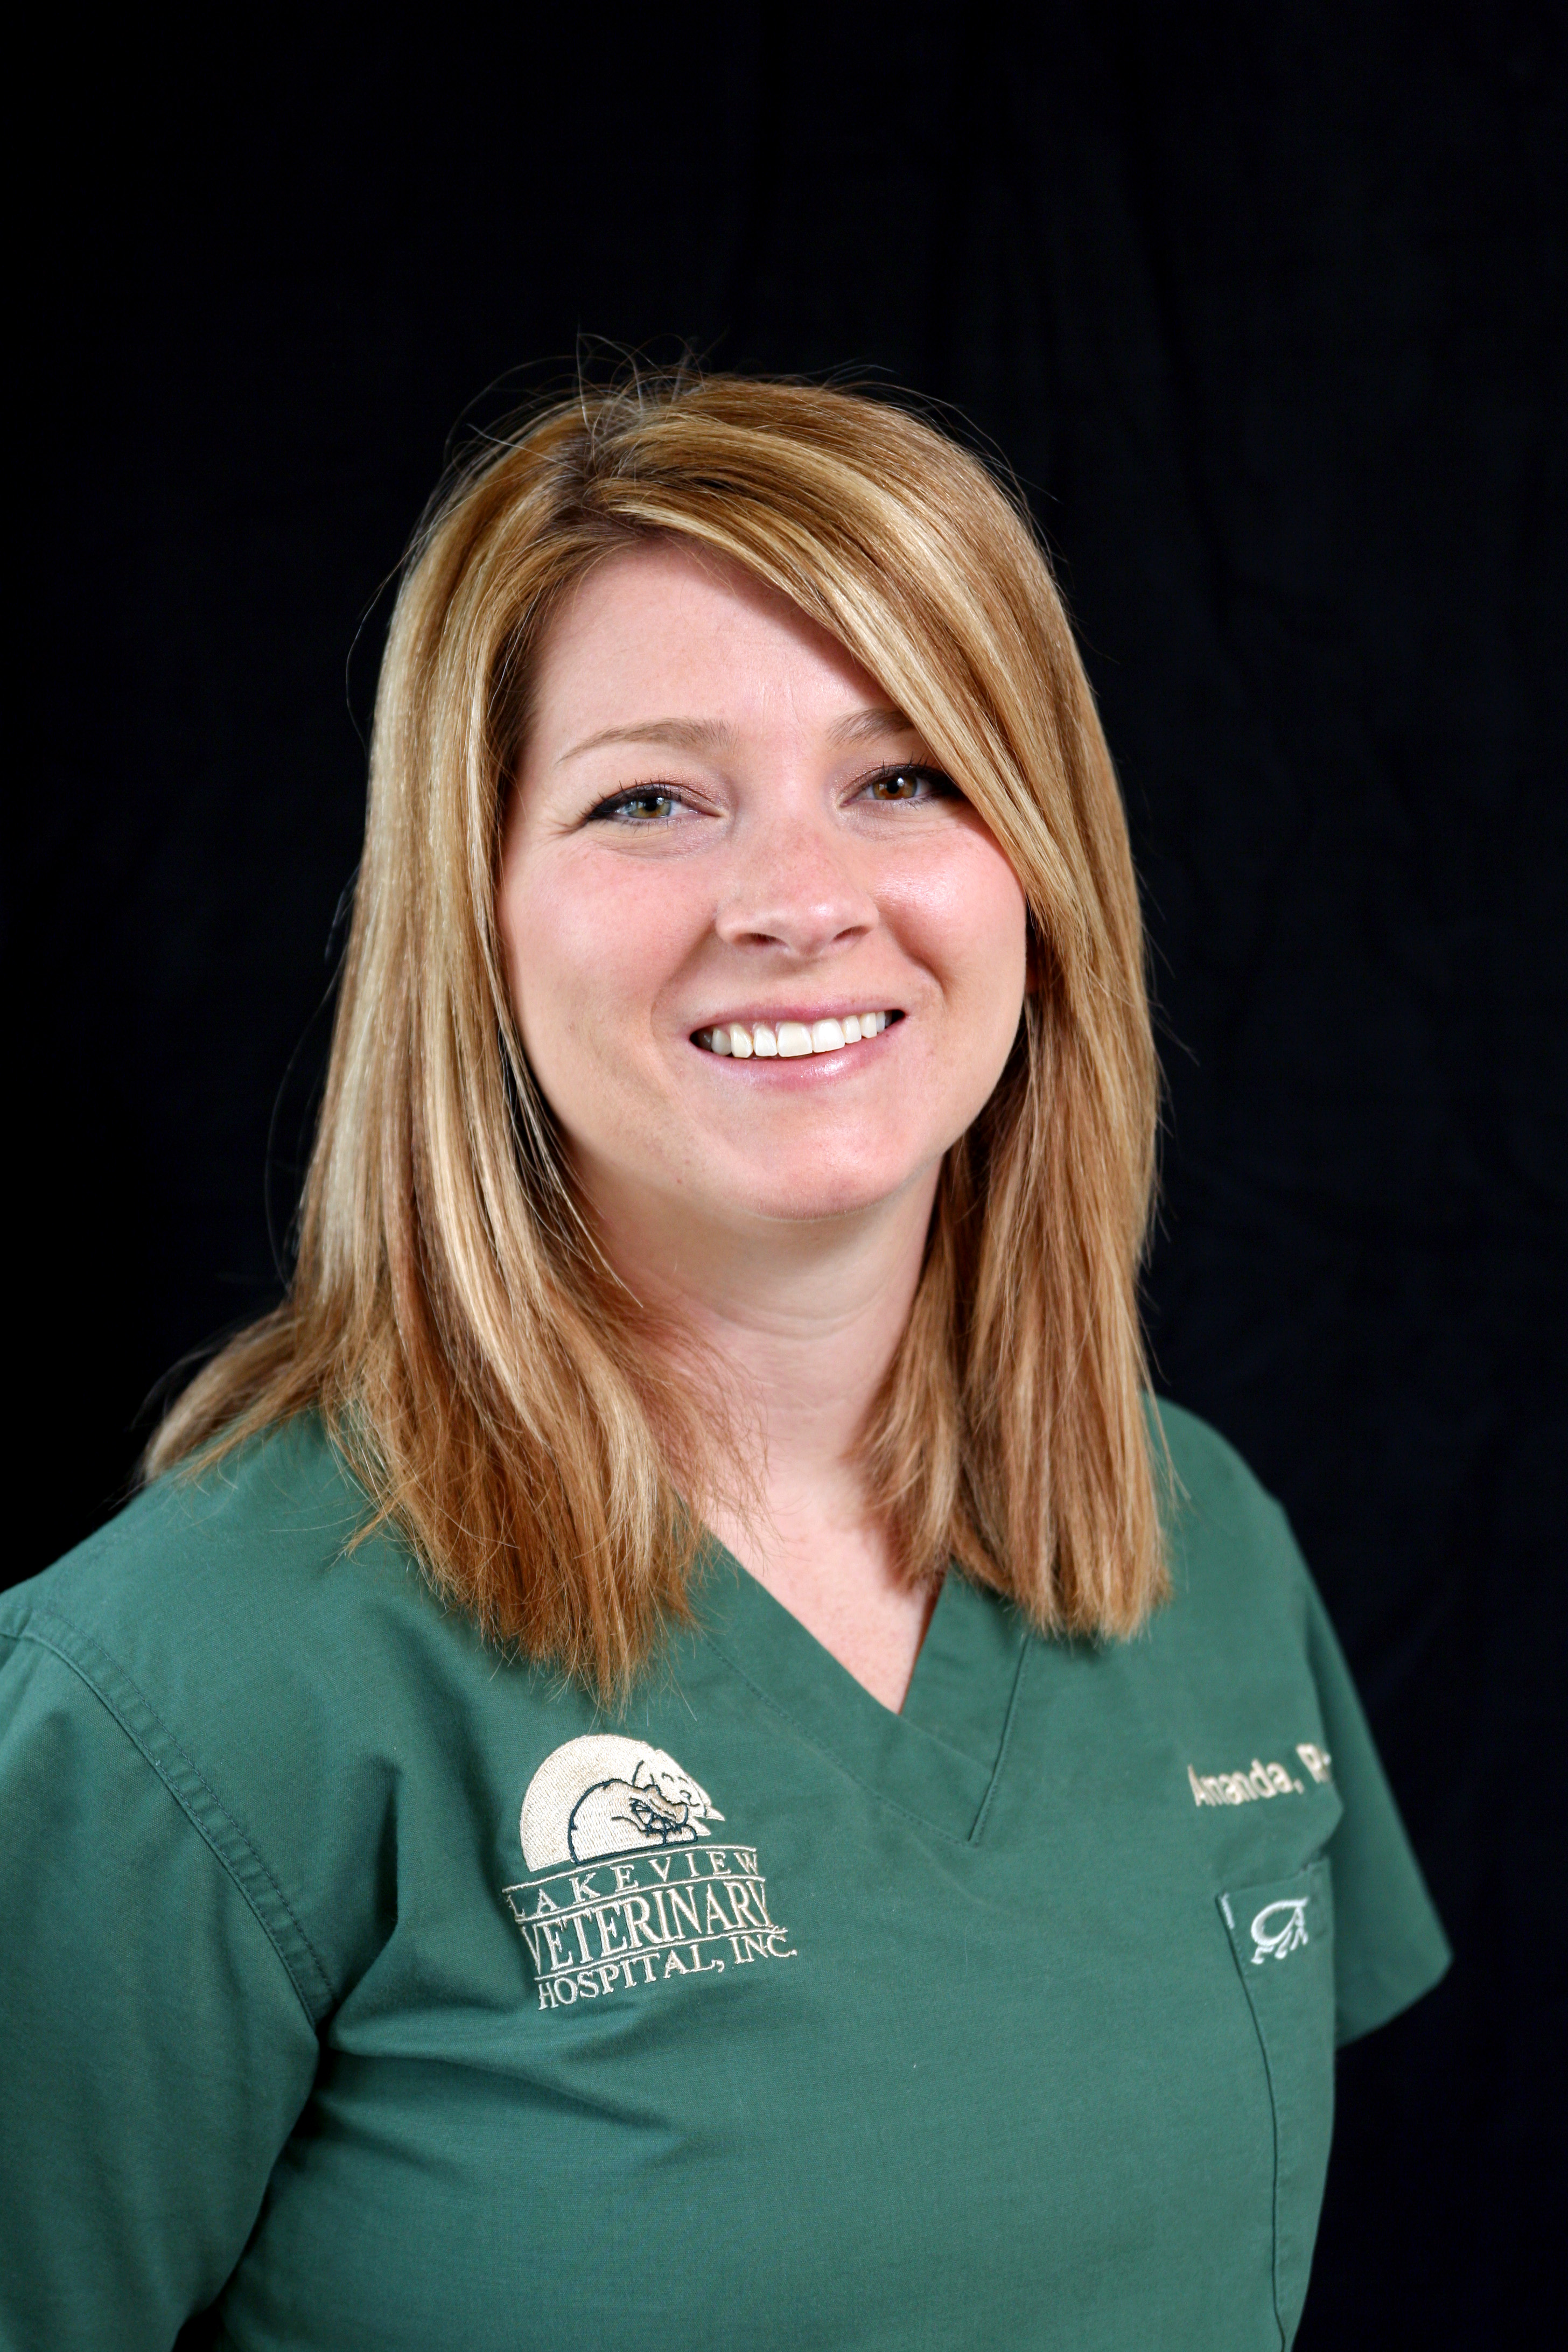 Amanda Pizzo, Registered Veterinary Technician